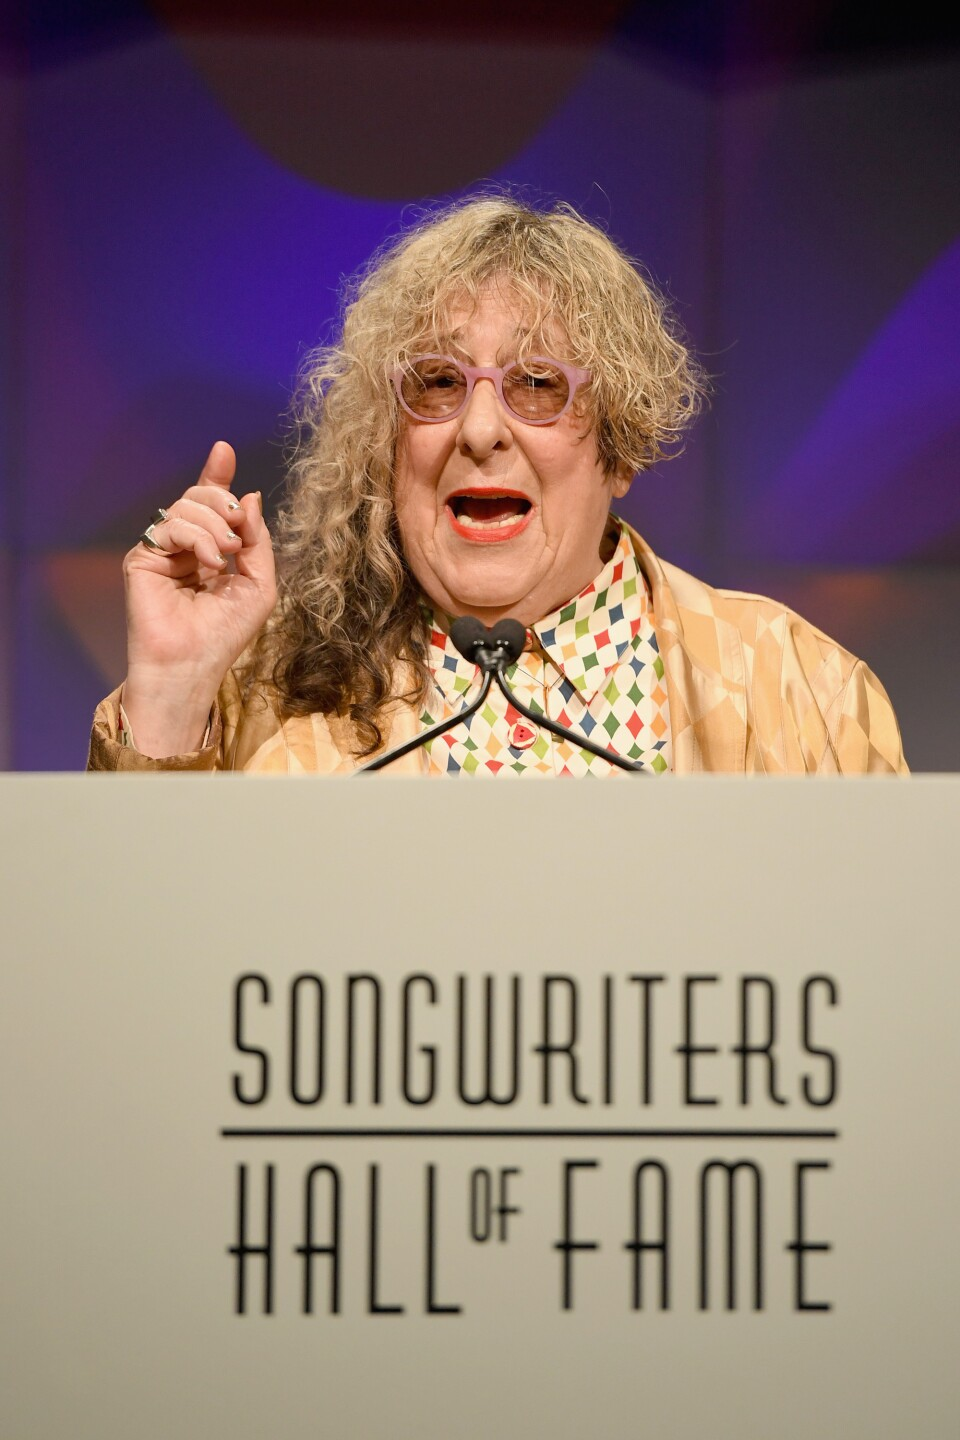 Songwriters Hall Of Fame 49th Annual Induction And Awards Dinner - Show